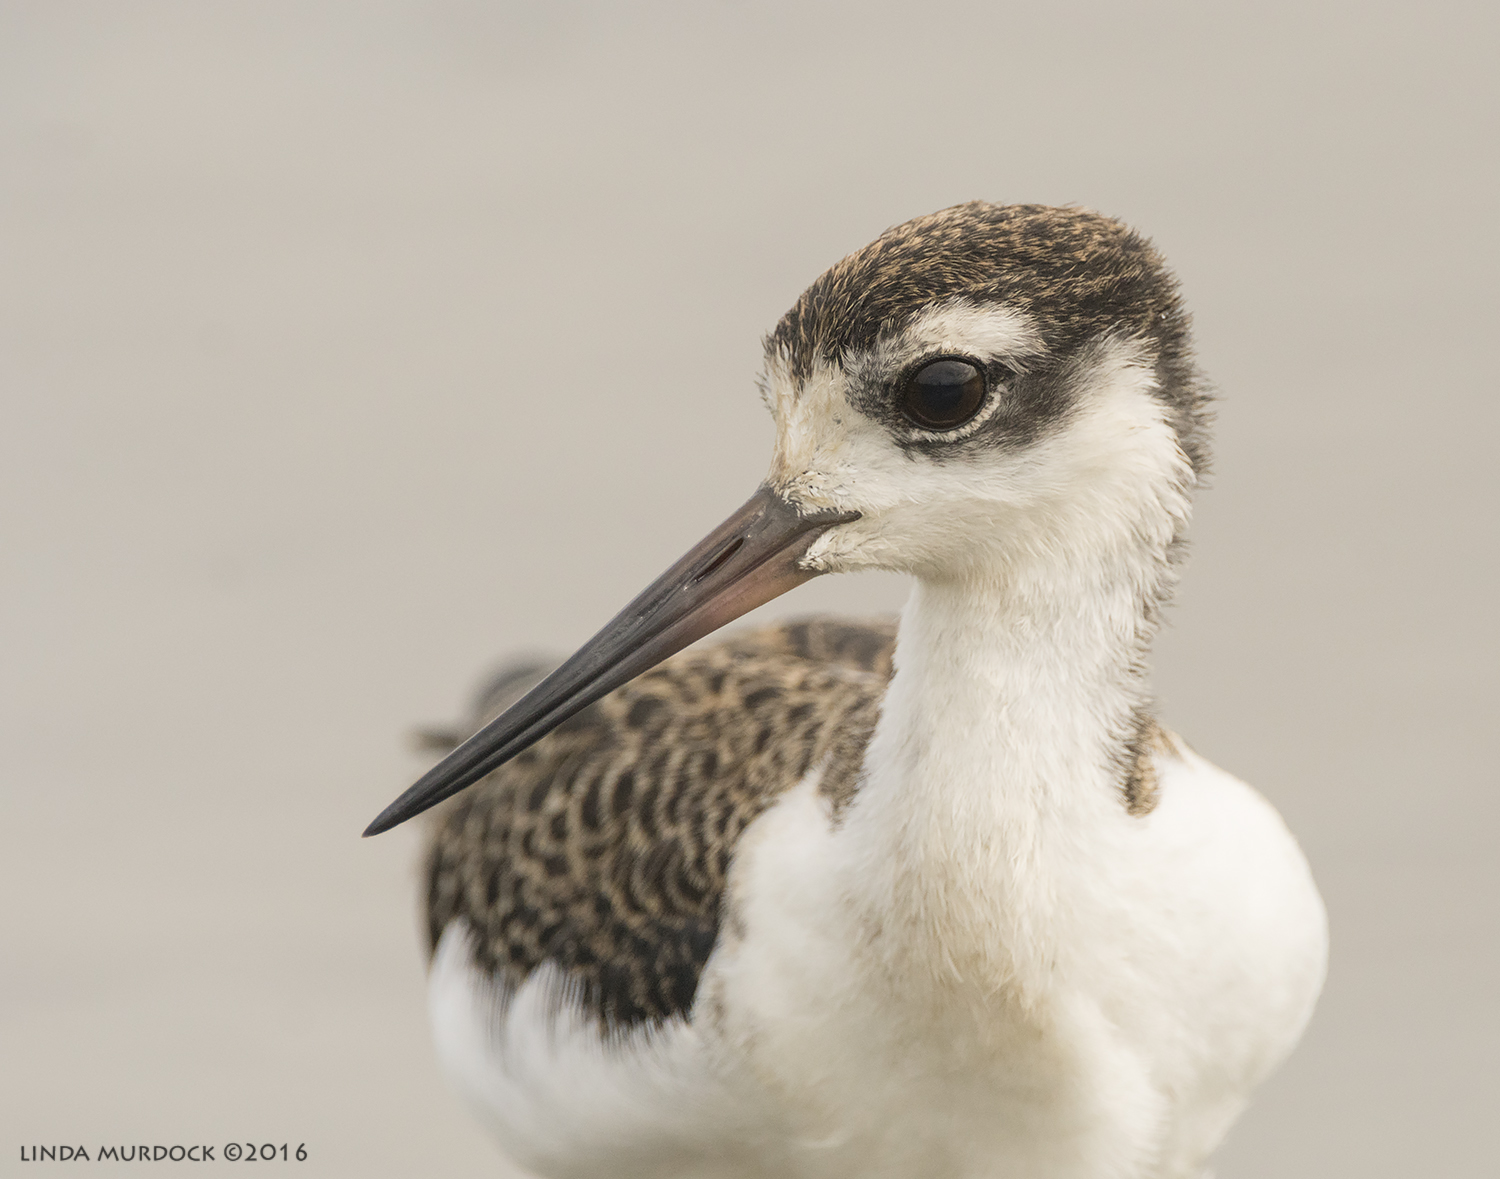 Young Black-Necked Stilt    Sony A77II with Sony f/4 500 G + 1.4x TC; 1/1600 sec f/7.1 ISO 1250; tripod